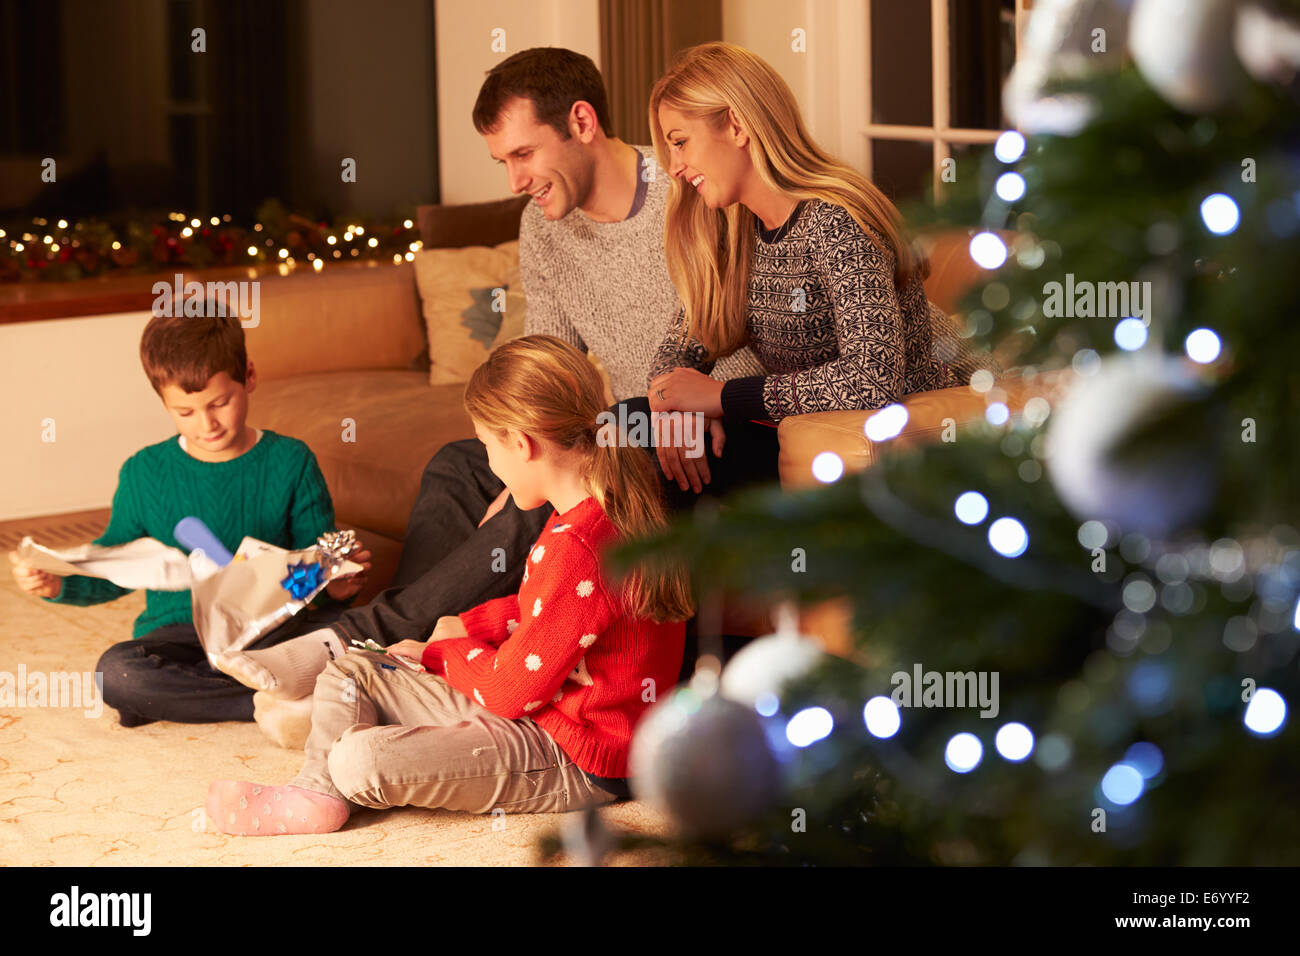 Family Unwrapping Gifts By Christmas Tree - Stock Image